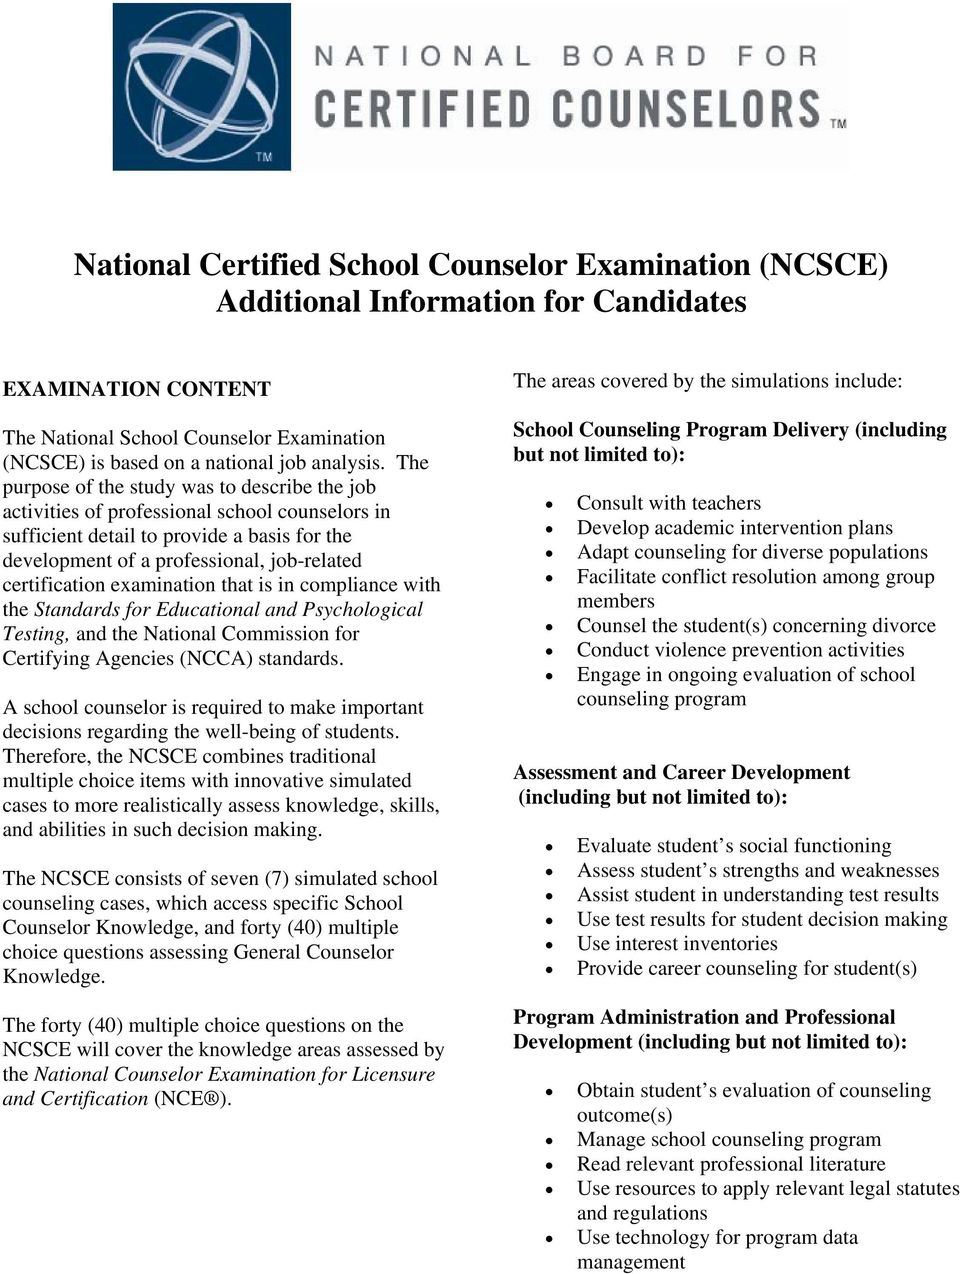 National Certified School Counselor Examination (NCSCE